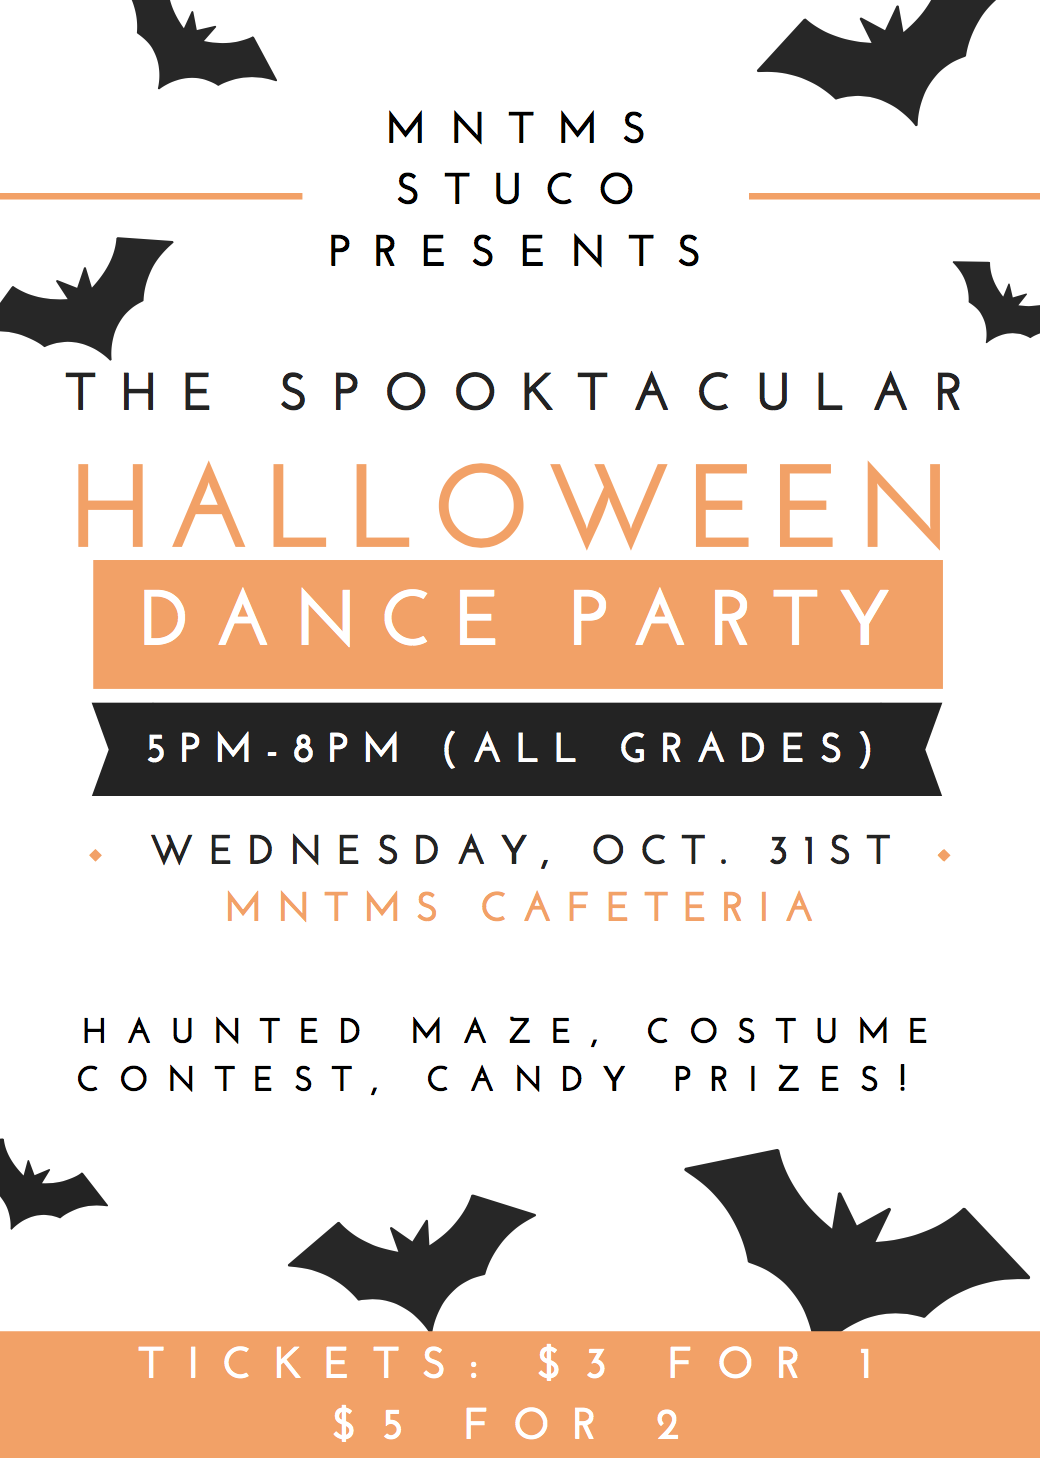 MNTMS STUCO Presents....The Spooktacular HALLOWEEN Dance Party Thumbnail Image